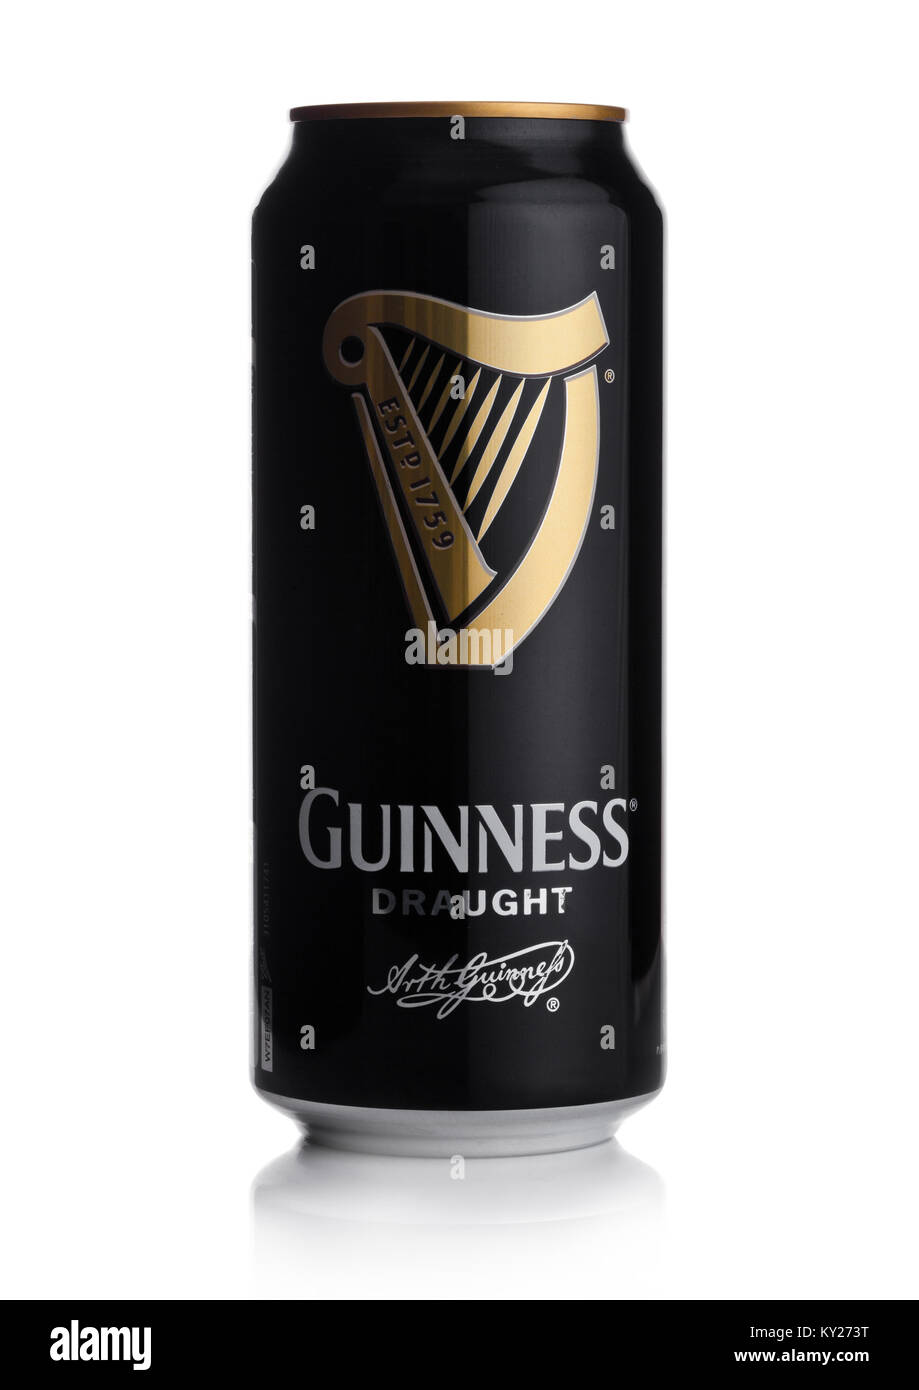 LONDON, UK - JANUARY 02, 2018: Aluminium can of Guinness draught beer on white background. Guinness beer has been - Stock Image